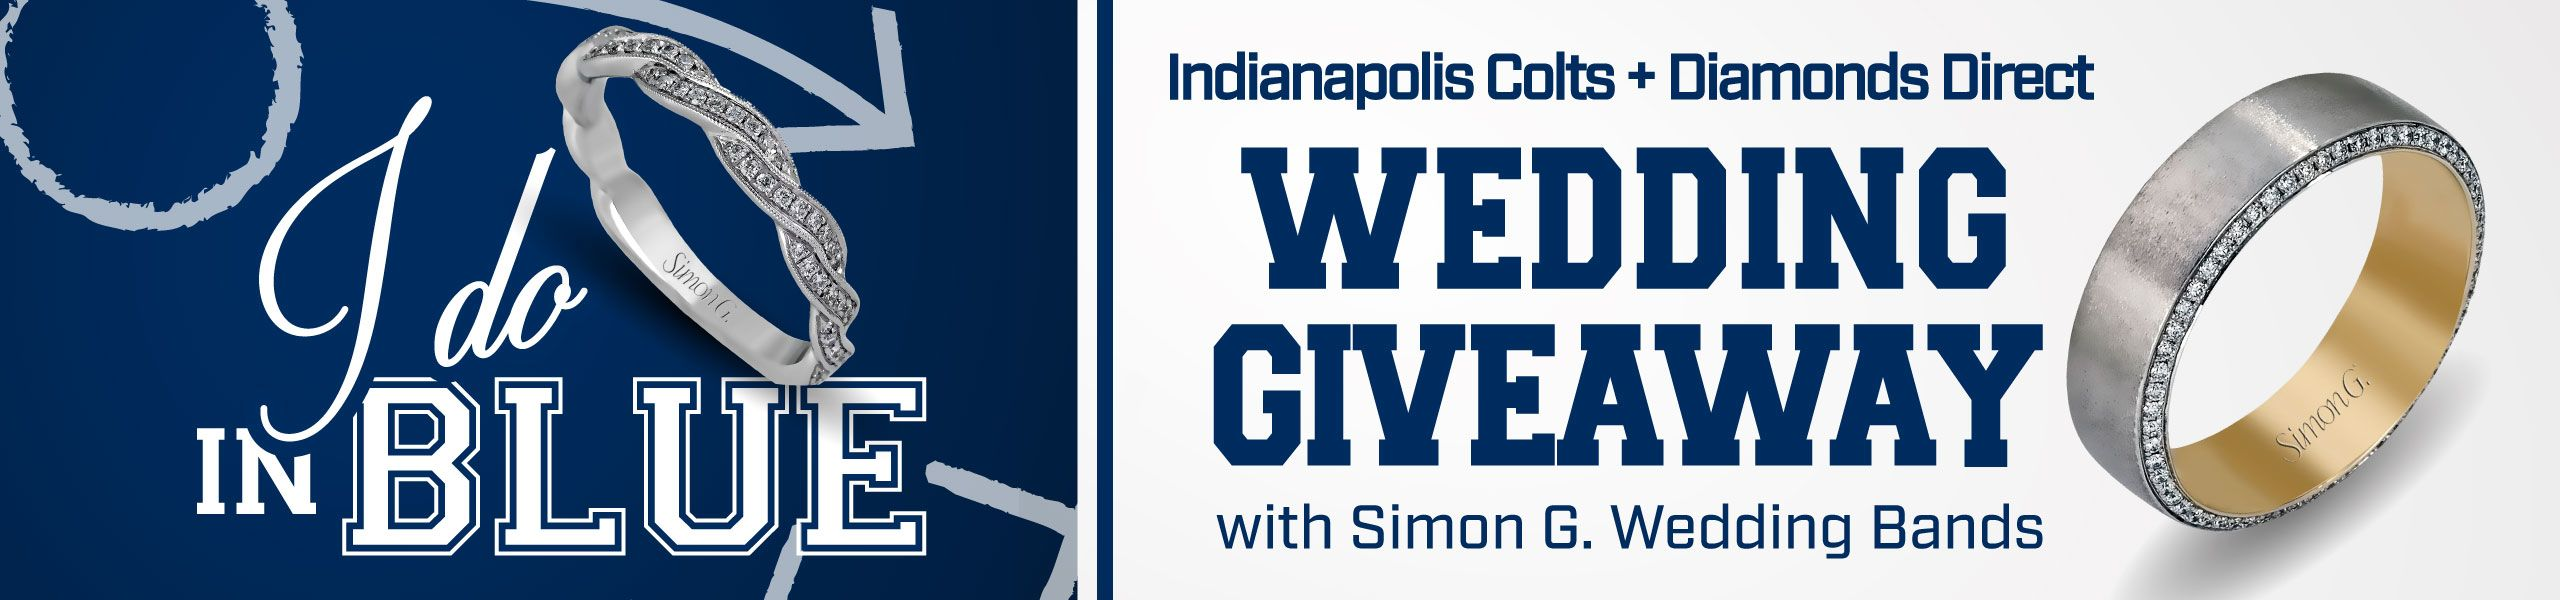 I Do In Blue  Indianapolis Colts + Diamonds Direct Wedding Giveaway with Simon G. Wedding Bands